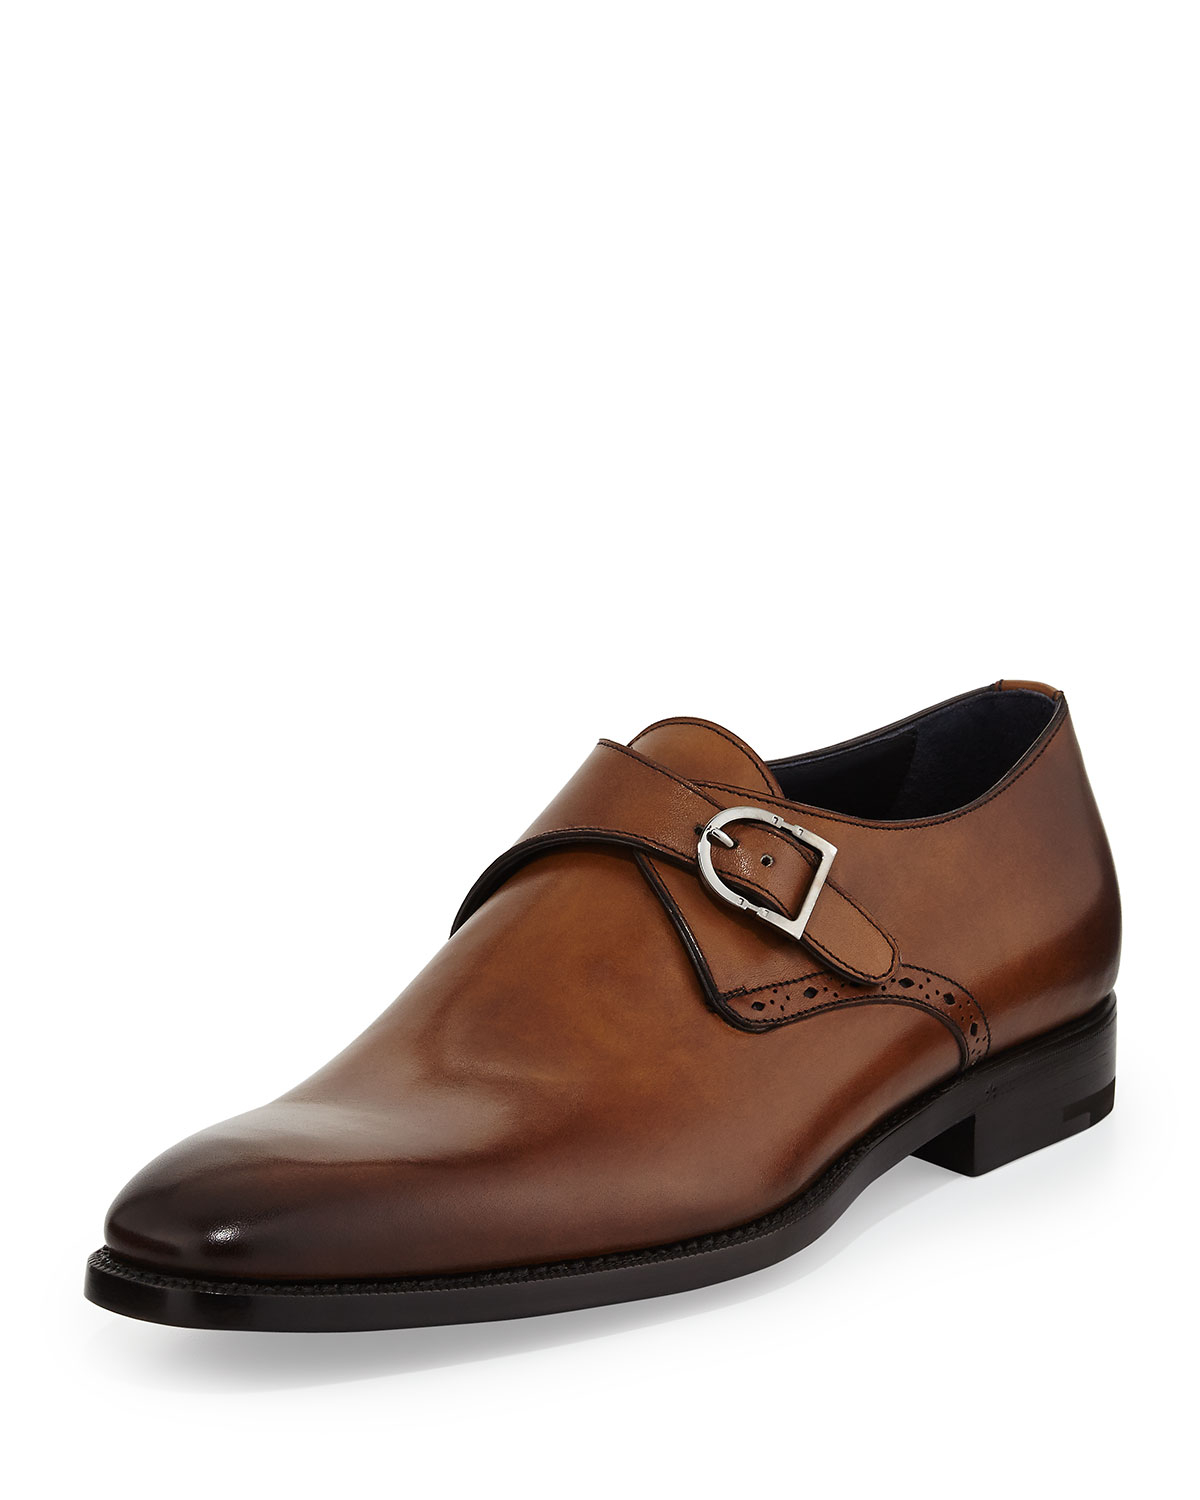 Single Buckle Mens Shoes